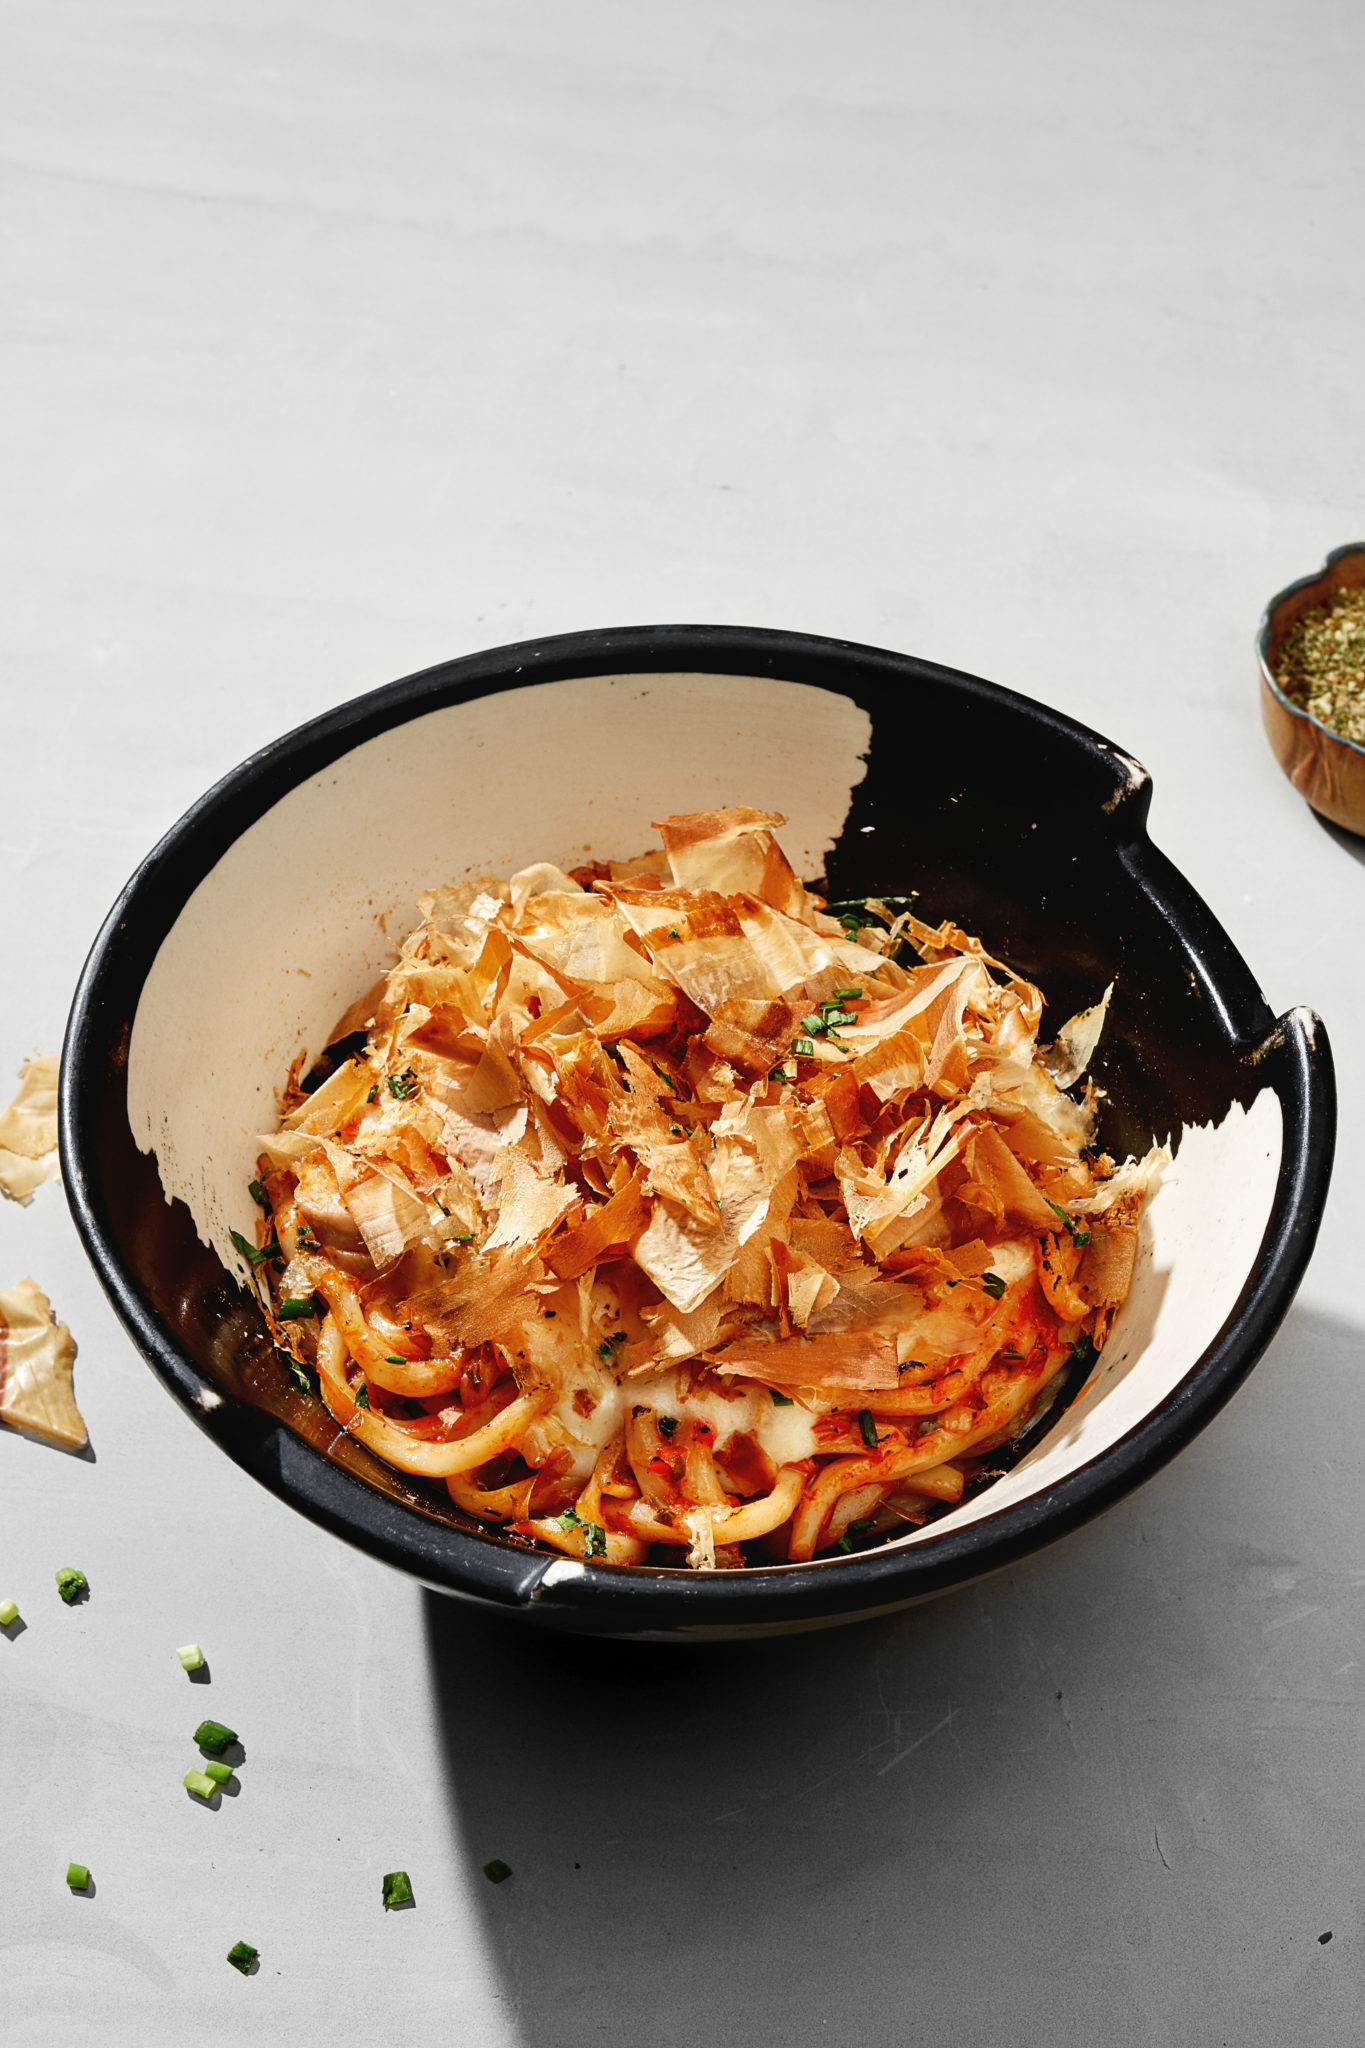 The udon Bolognese is an edible nod to the Japanese fascination for European culture and cuisine